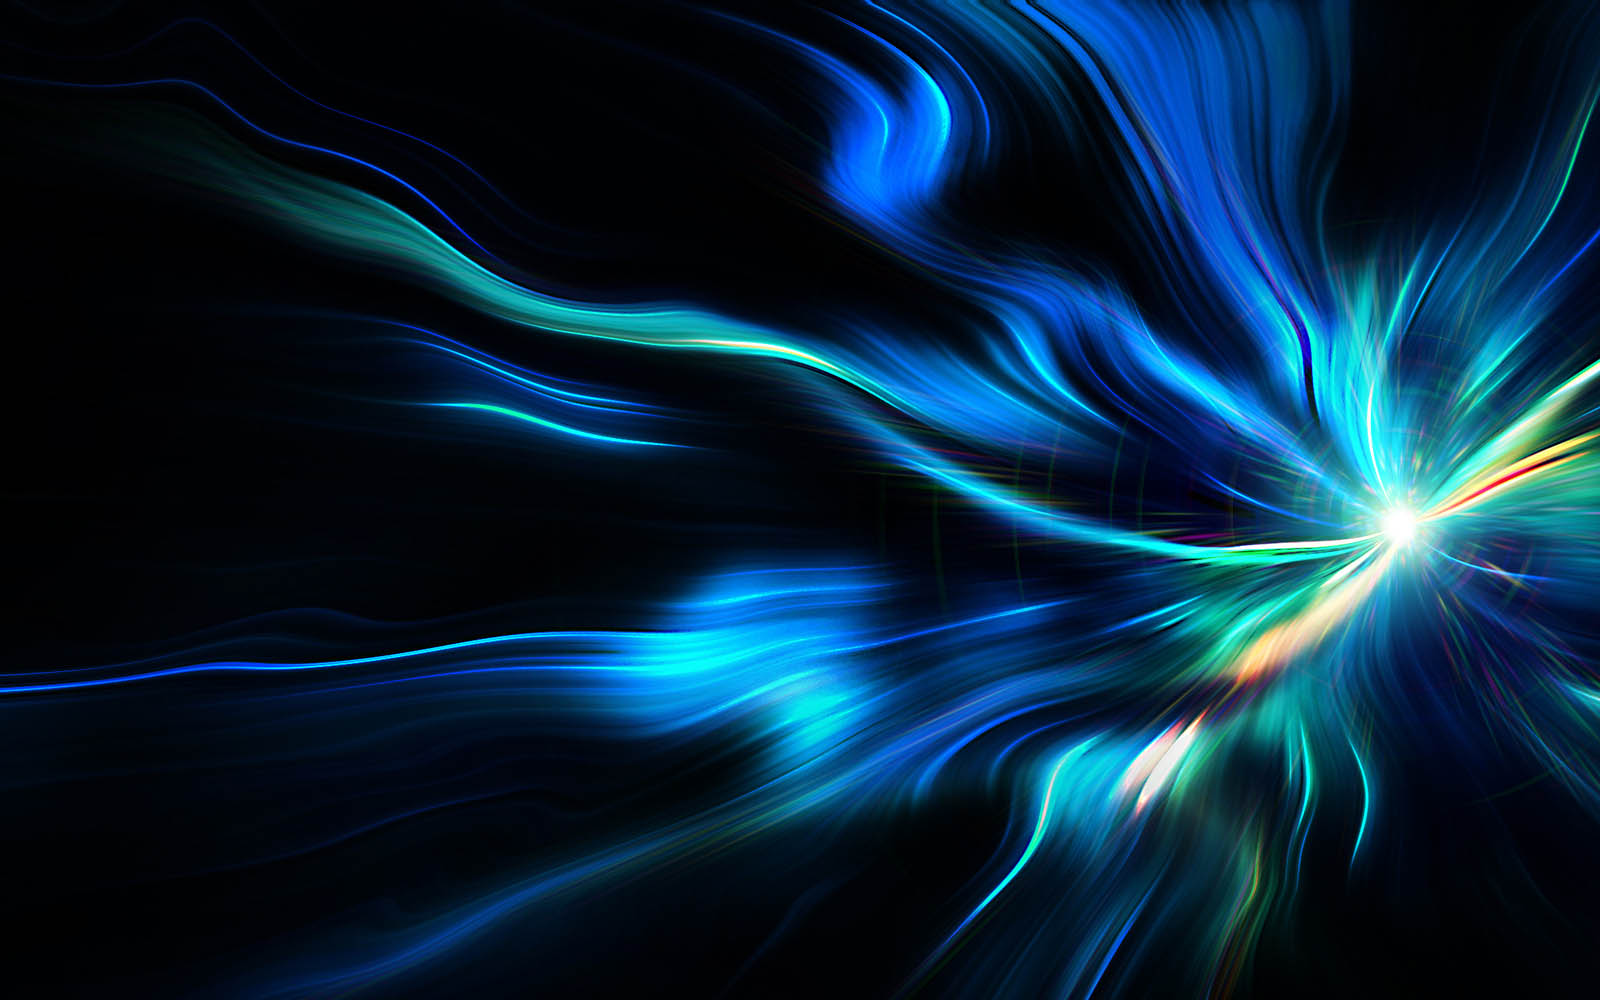 Shining 3d wallpapers shining 3ddesktop wallpapers shining 3d